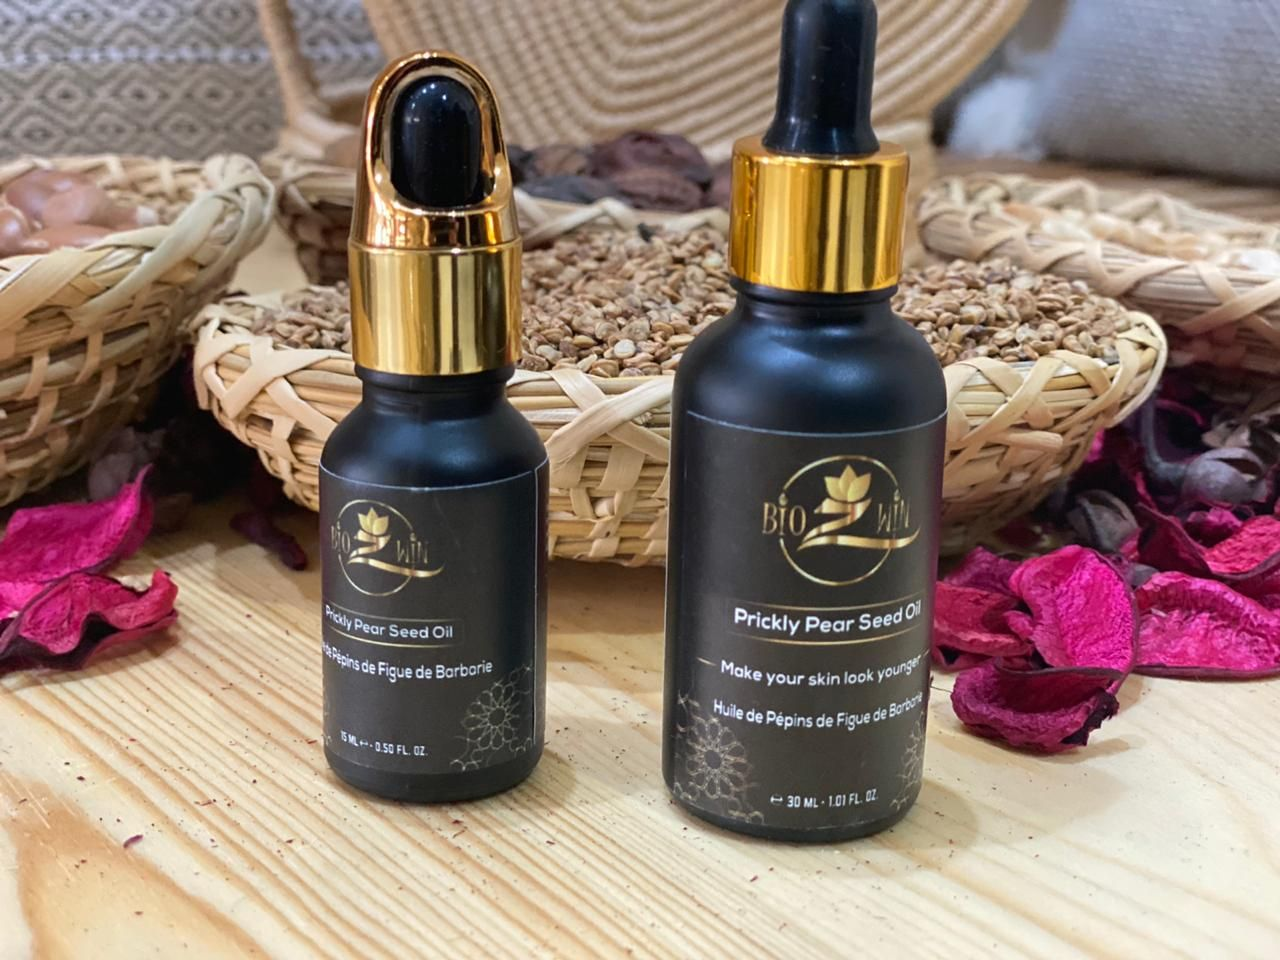 Prickly Pear Seed Oil: The natural way to look younger without surgery